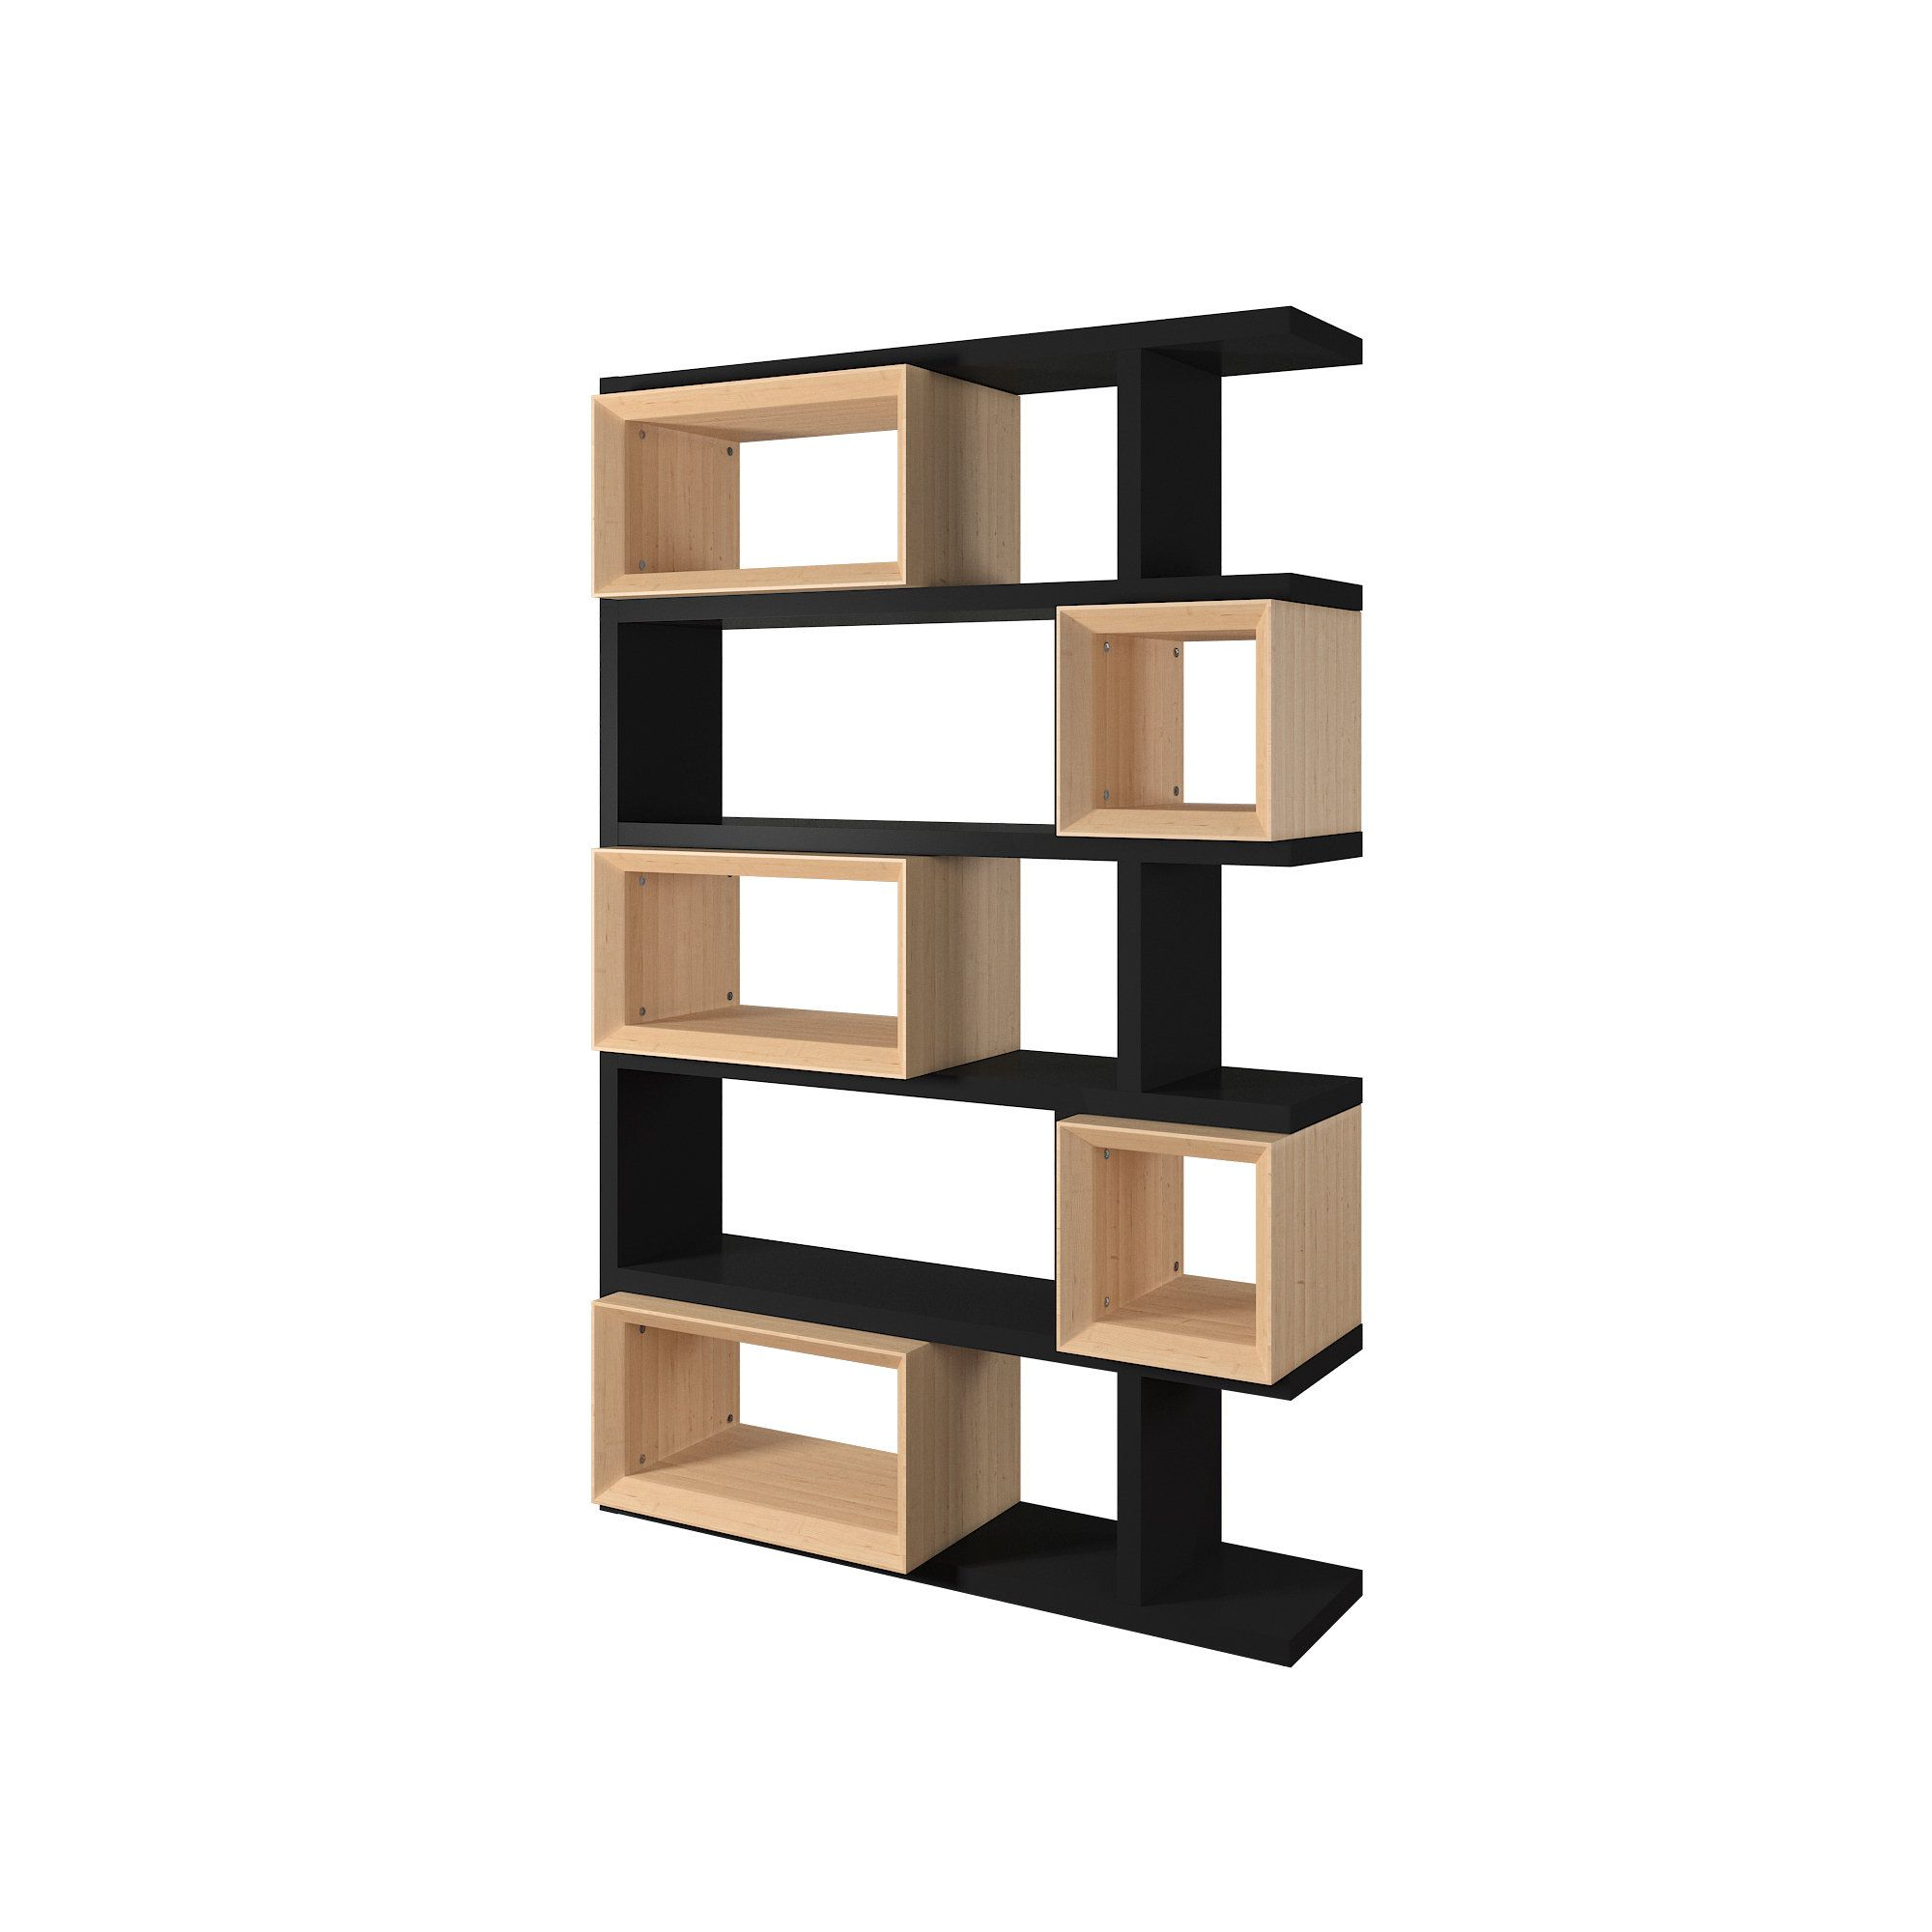 Fashionable Erika And Finish Open Bookshelfmid Century Living Throughout Chantilly Geometric Bookcases (View 12 of 20)